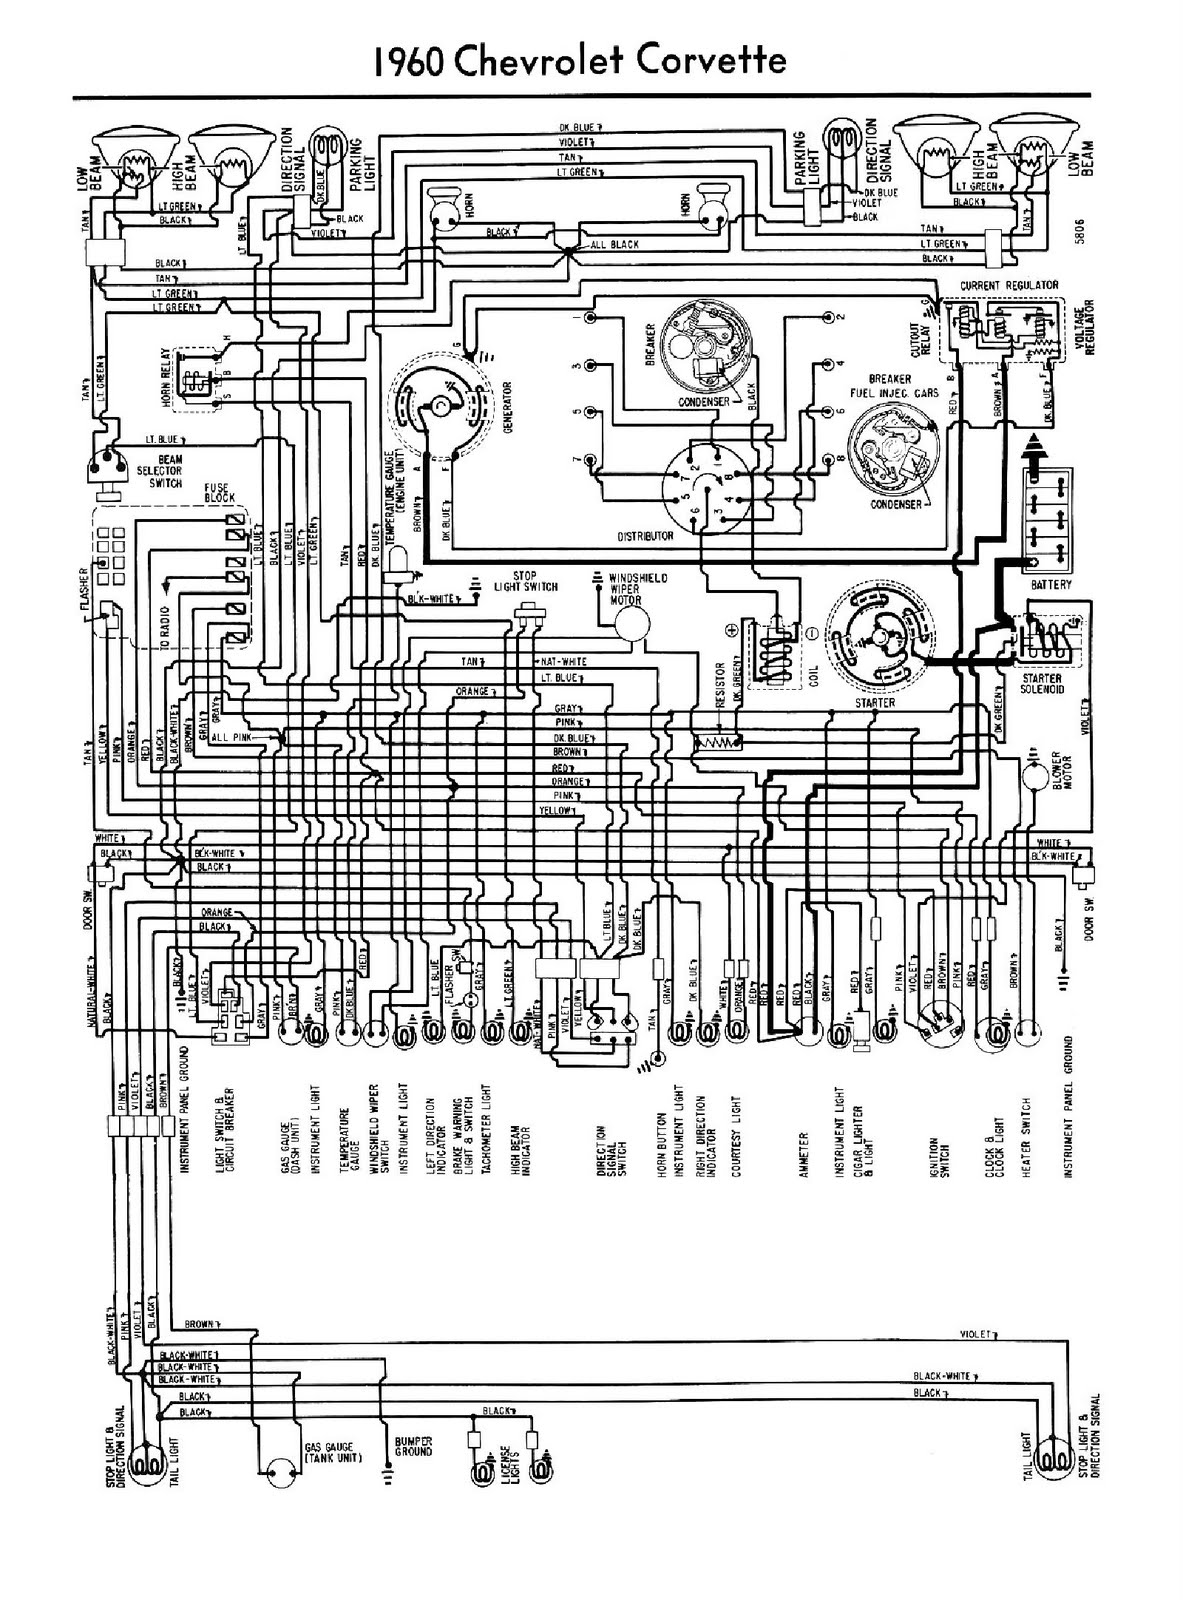 1960_Chevrolet_Corvette_Wiring free auto wiring diagram 1960 chevrolet corvette wiring diagram corvette wiring schematic at soozxer.org